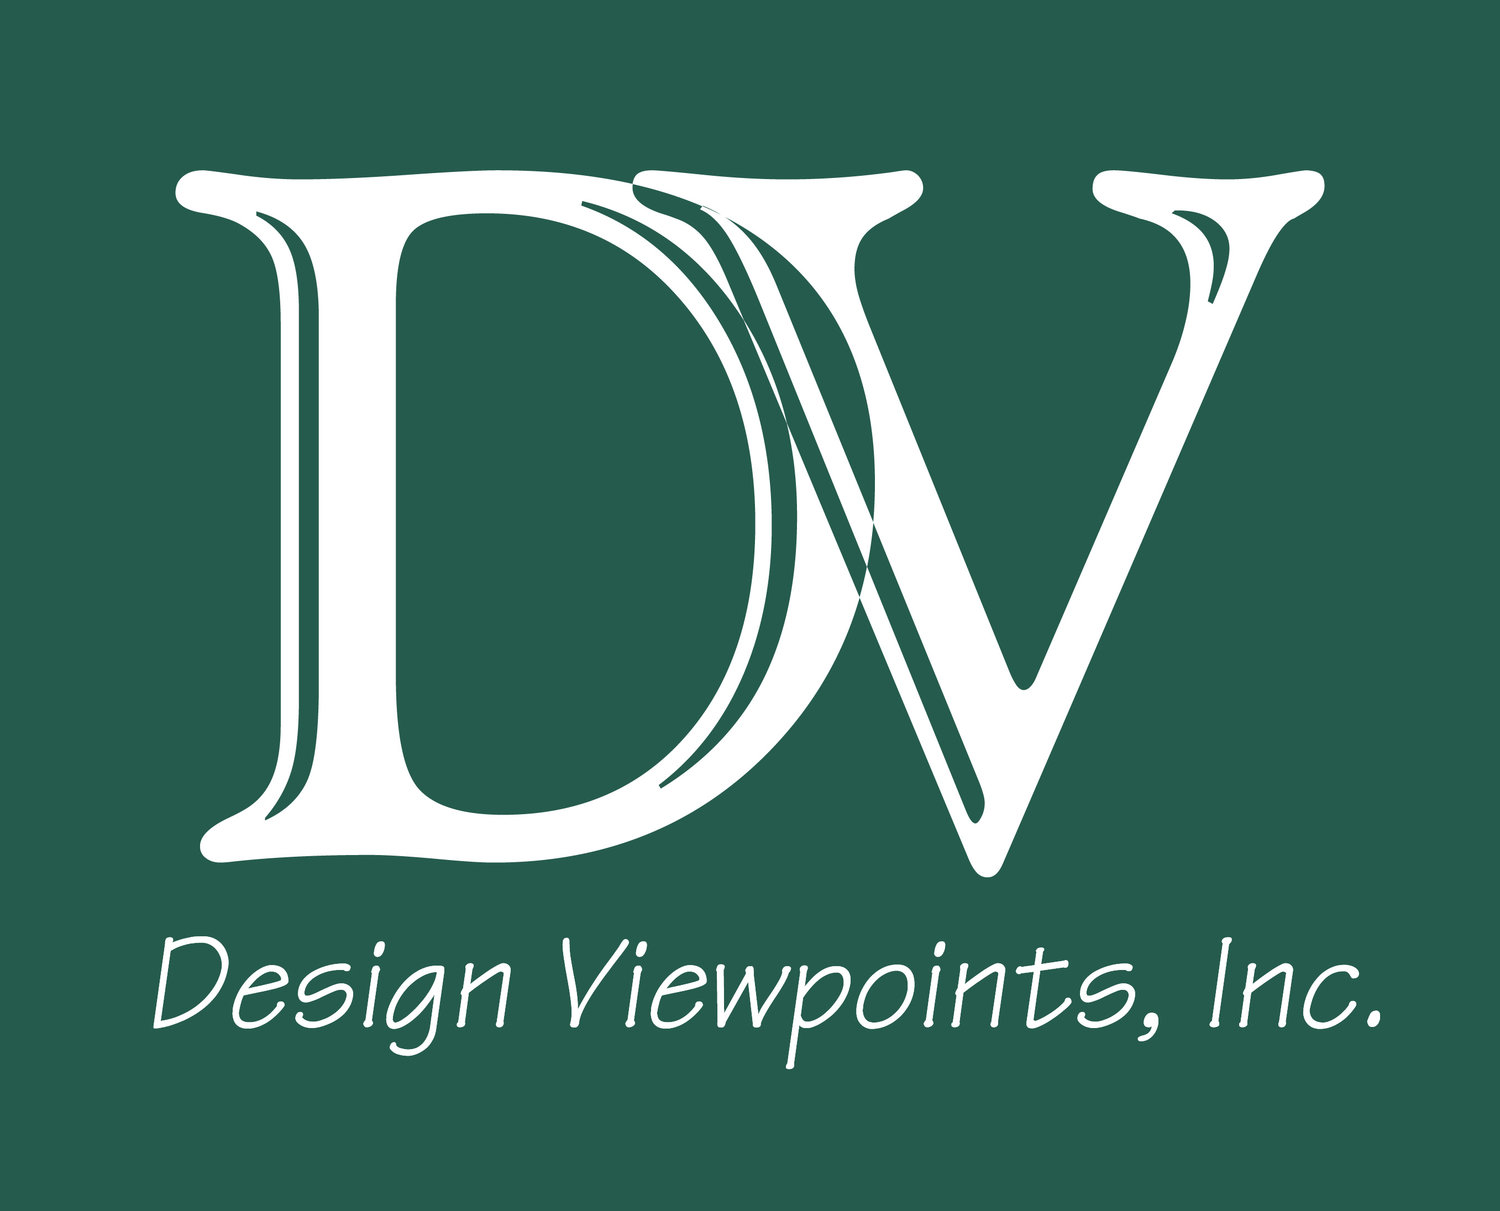 Design Viewpoints, Inc.